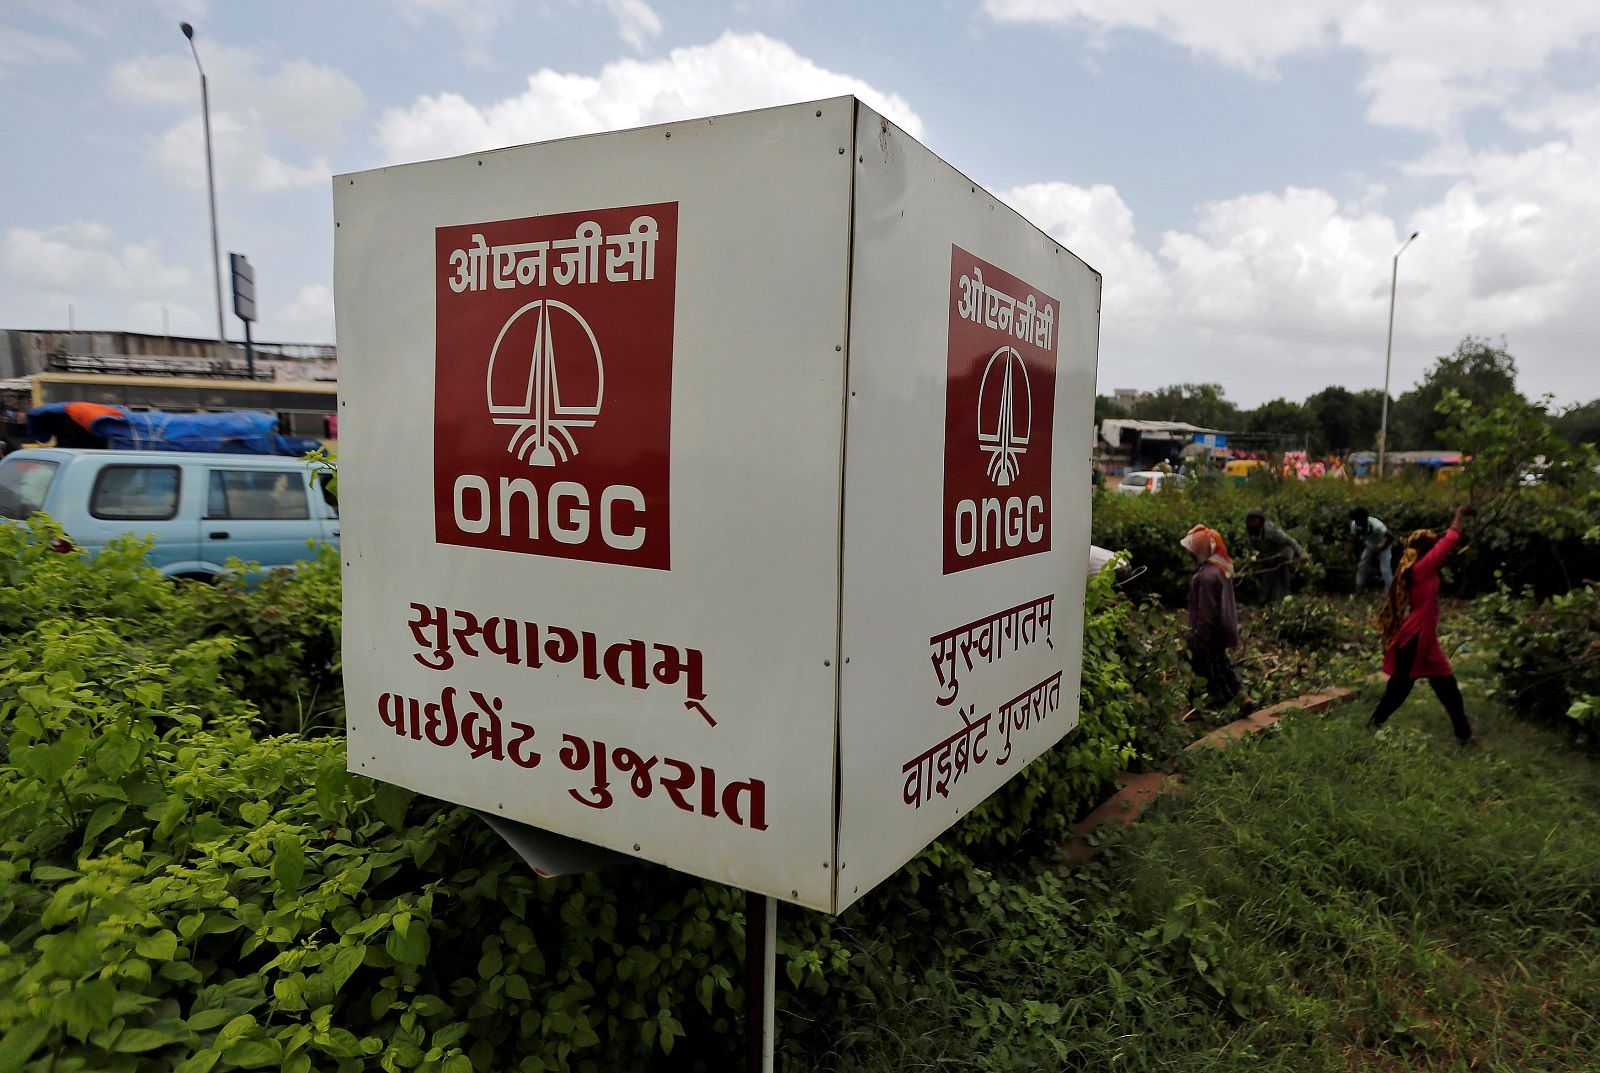 ONGC : The recent rise in crude oil prices and the expectations of further uptrend is not fully reflected in the current valuations of ONGC. Its average capex per annum has been in the range of Rs 30,000 to Rs 32,000 crore. The company's acquisition of a majority stake in HPCL is a defining move - one that significantly transforms its downstream portfolio. Still, the stock been experiencing a decline in production in its mature fields over the recent past, which may prove to be a headwind.